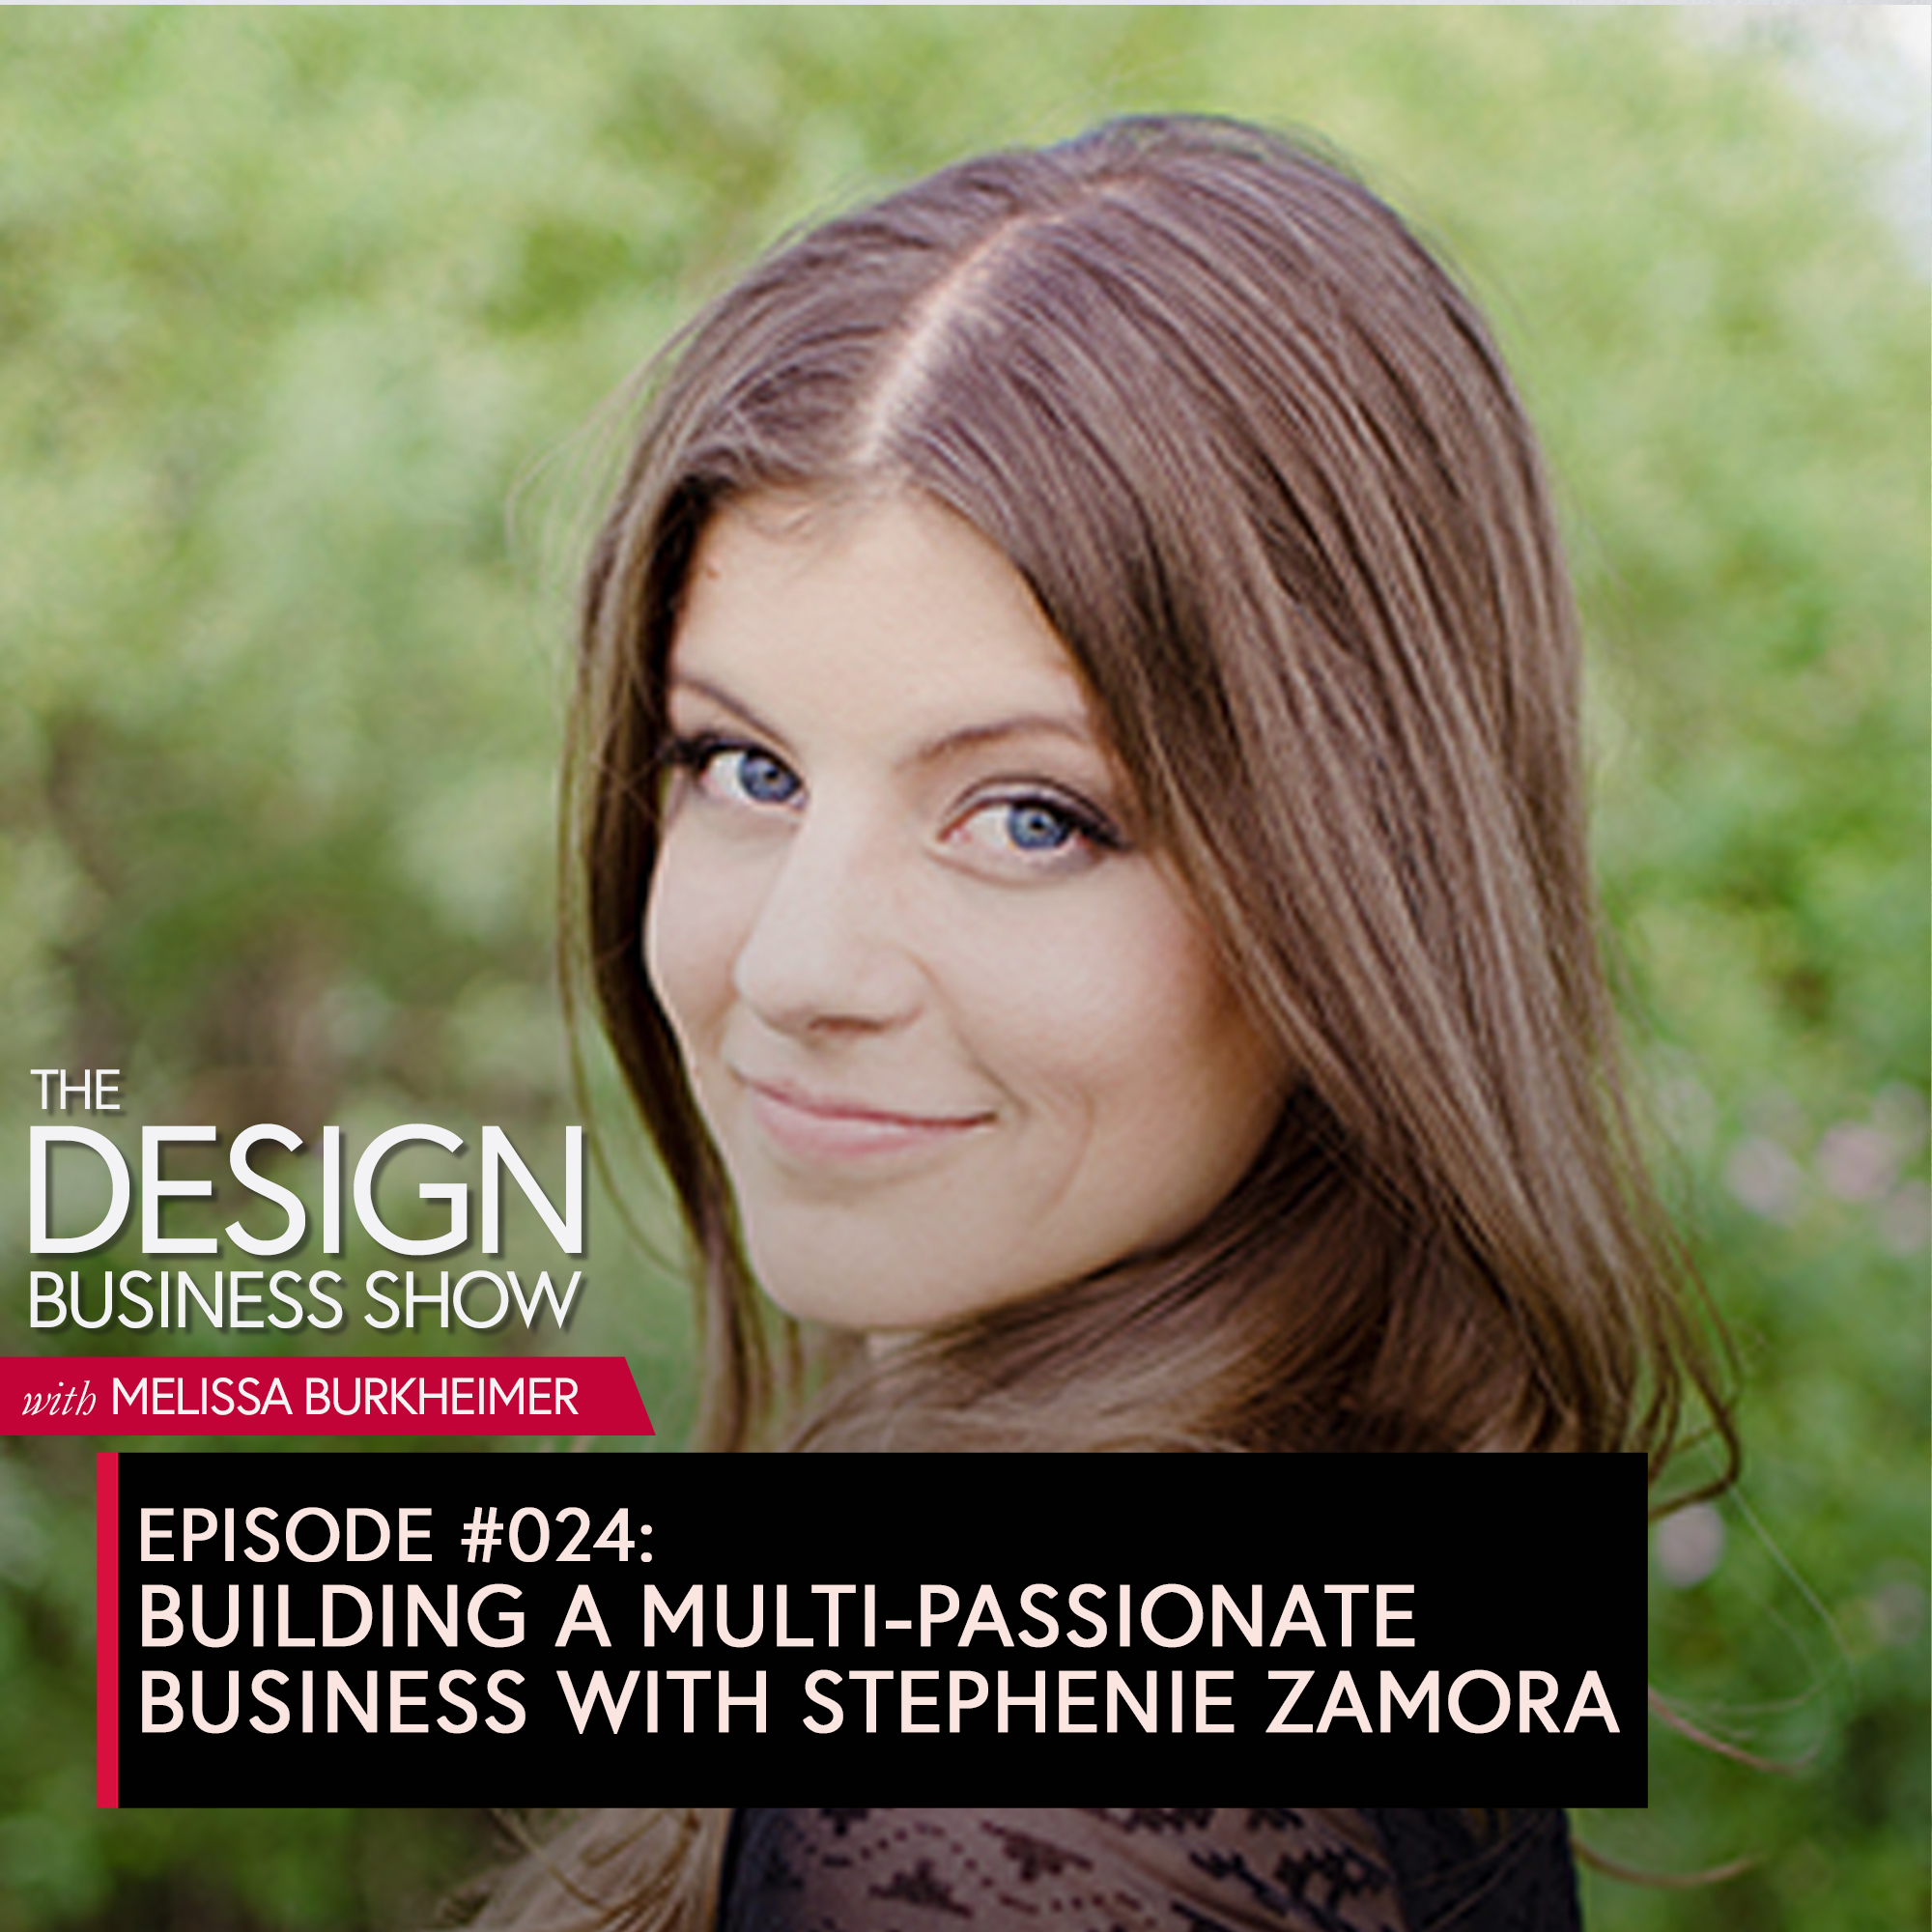 Join me for episode 24 of The Design Business Show with Stephenie Zamora, creative director over at Stephanie Zamora Design about building a multi-passionate business as a designer!